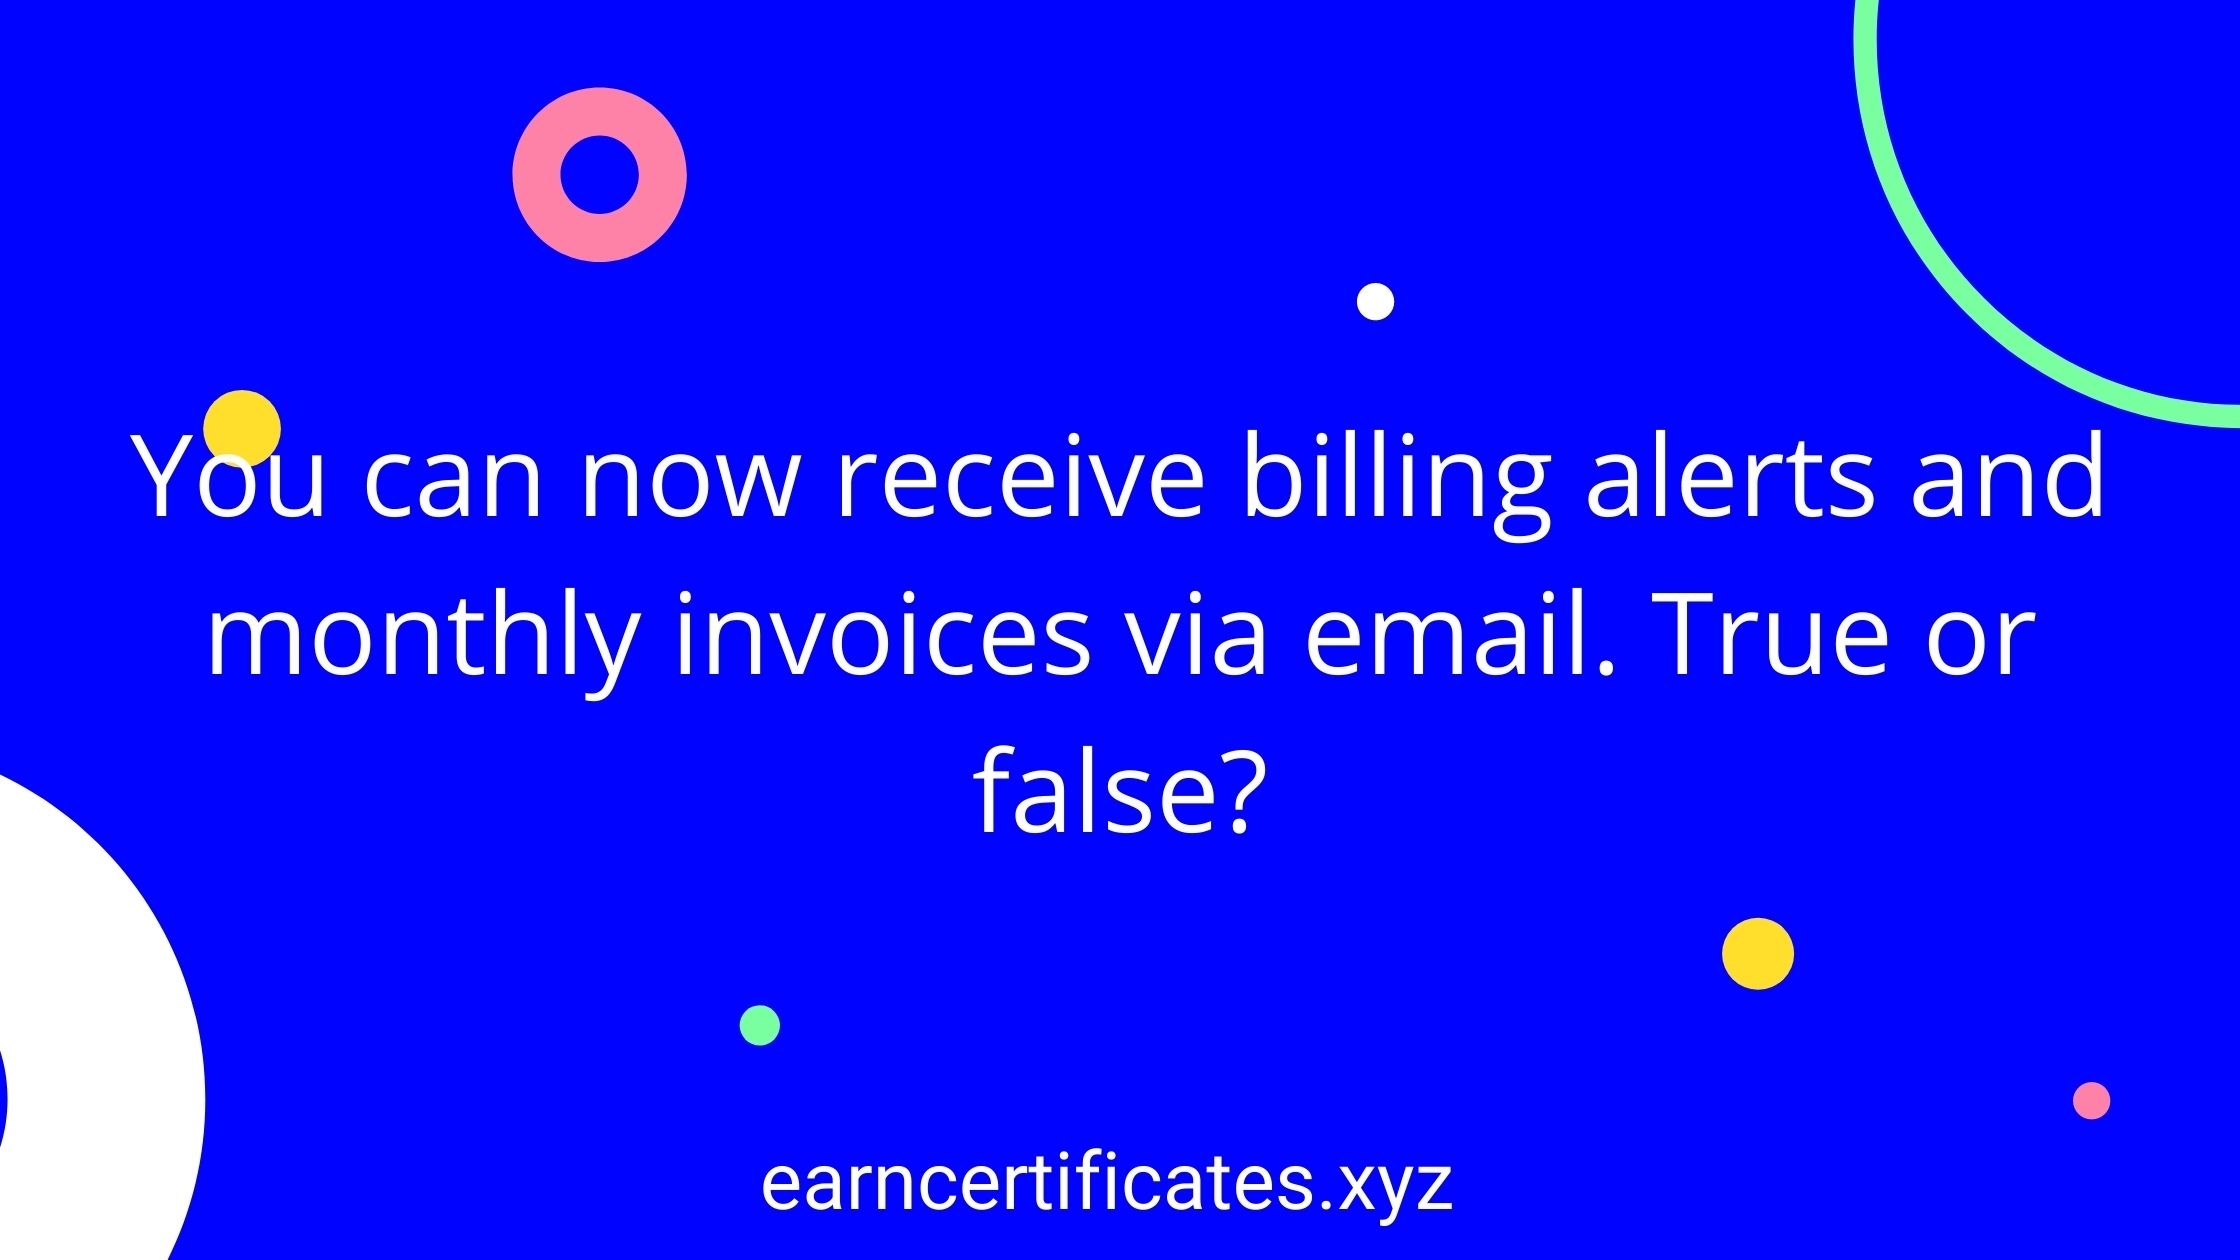 You can now receive billing alerts and monthly invoices via email. True or false?